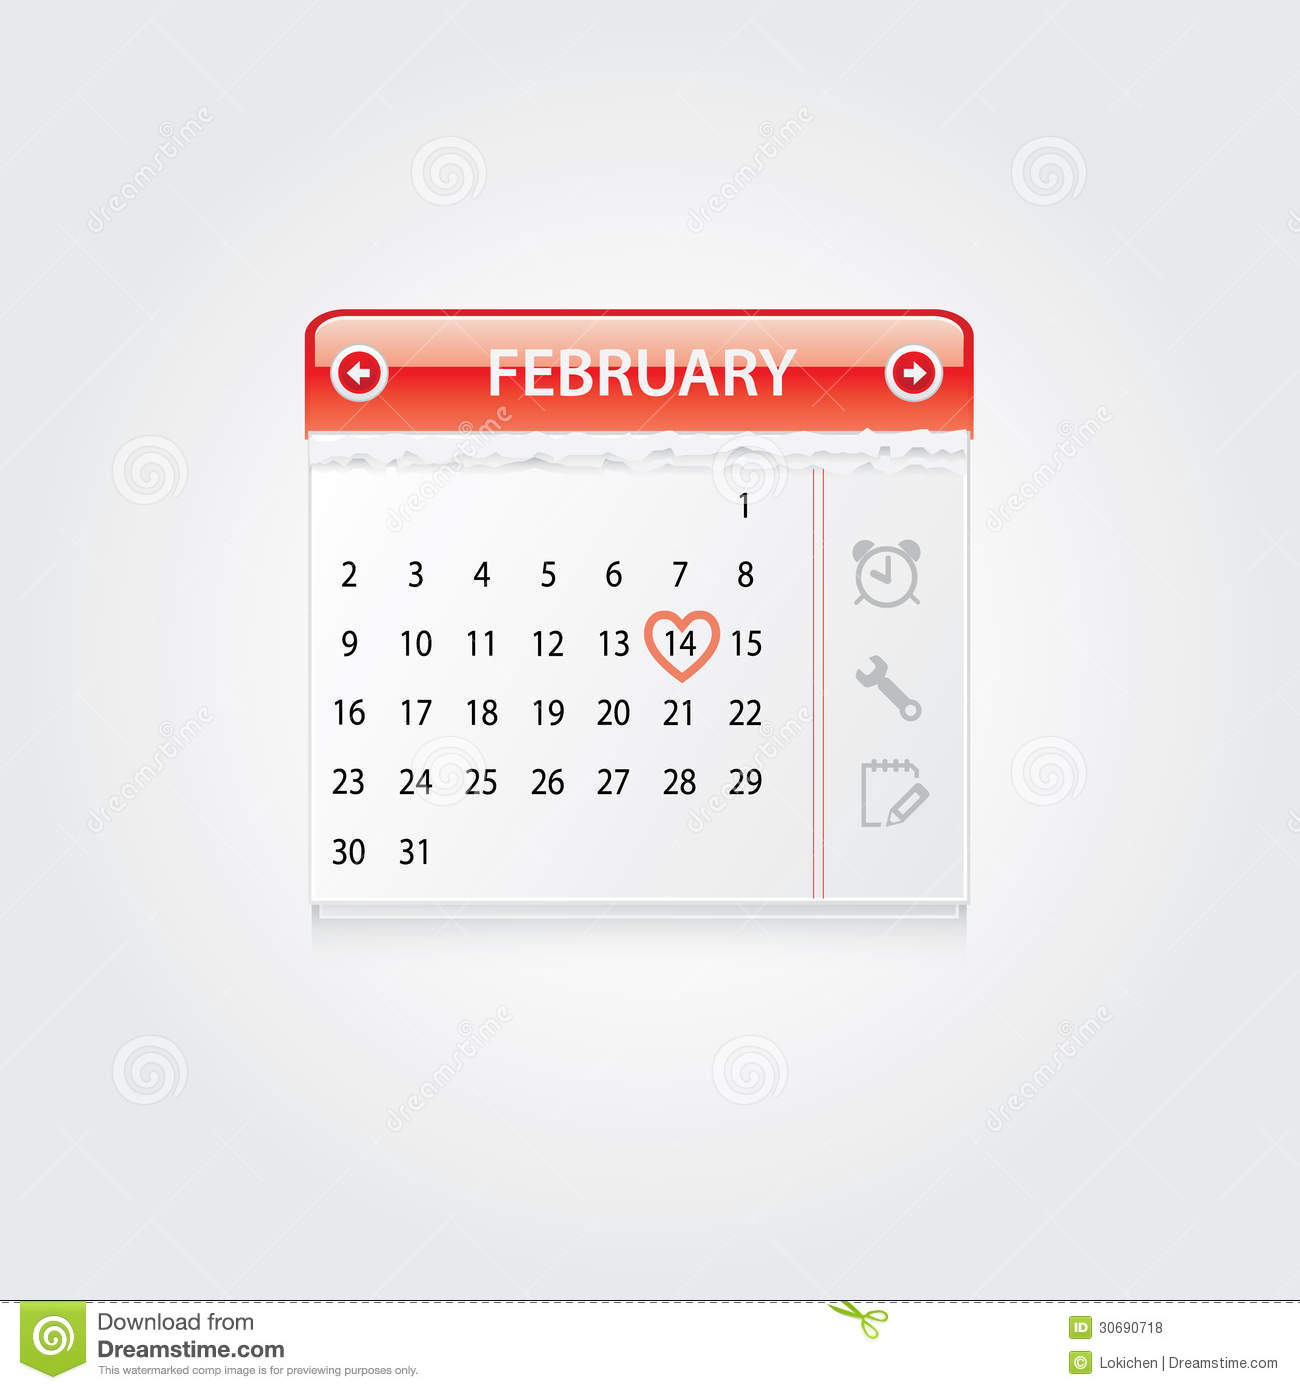 calendar dating site Today, americans are used to a calendar with a year based the earth's 1) and old new year (march 25), a system known as double dating.